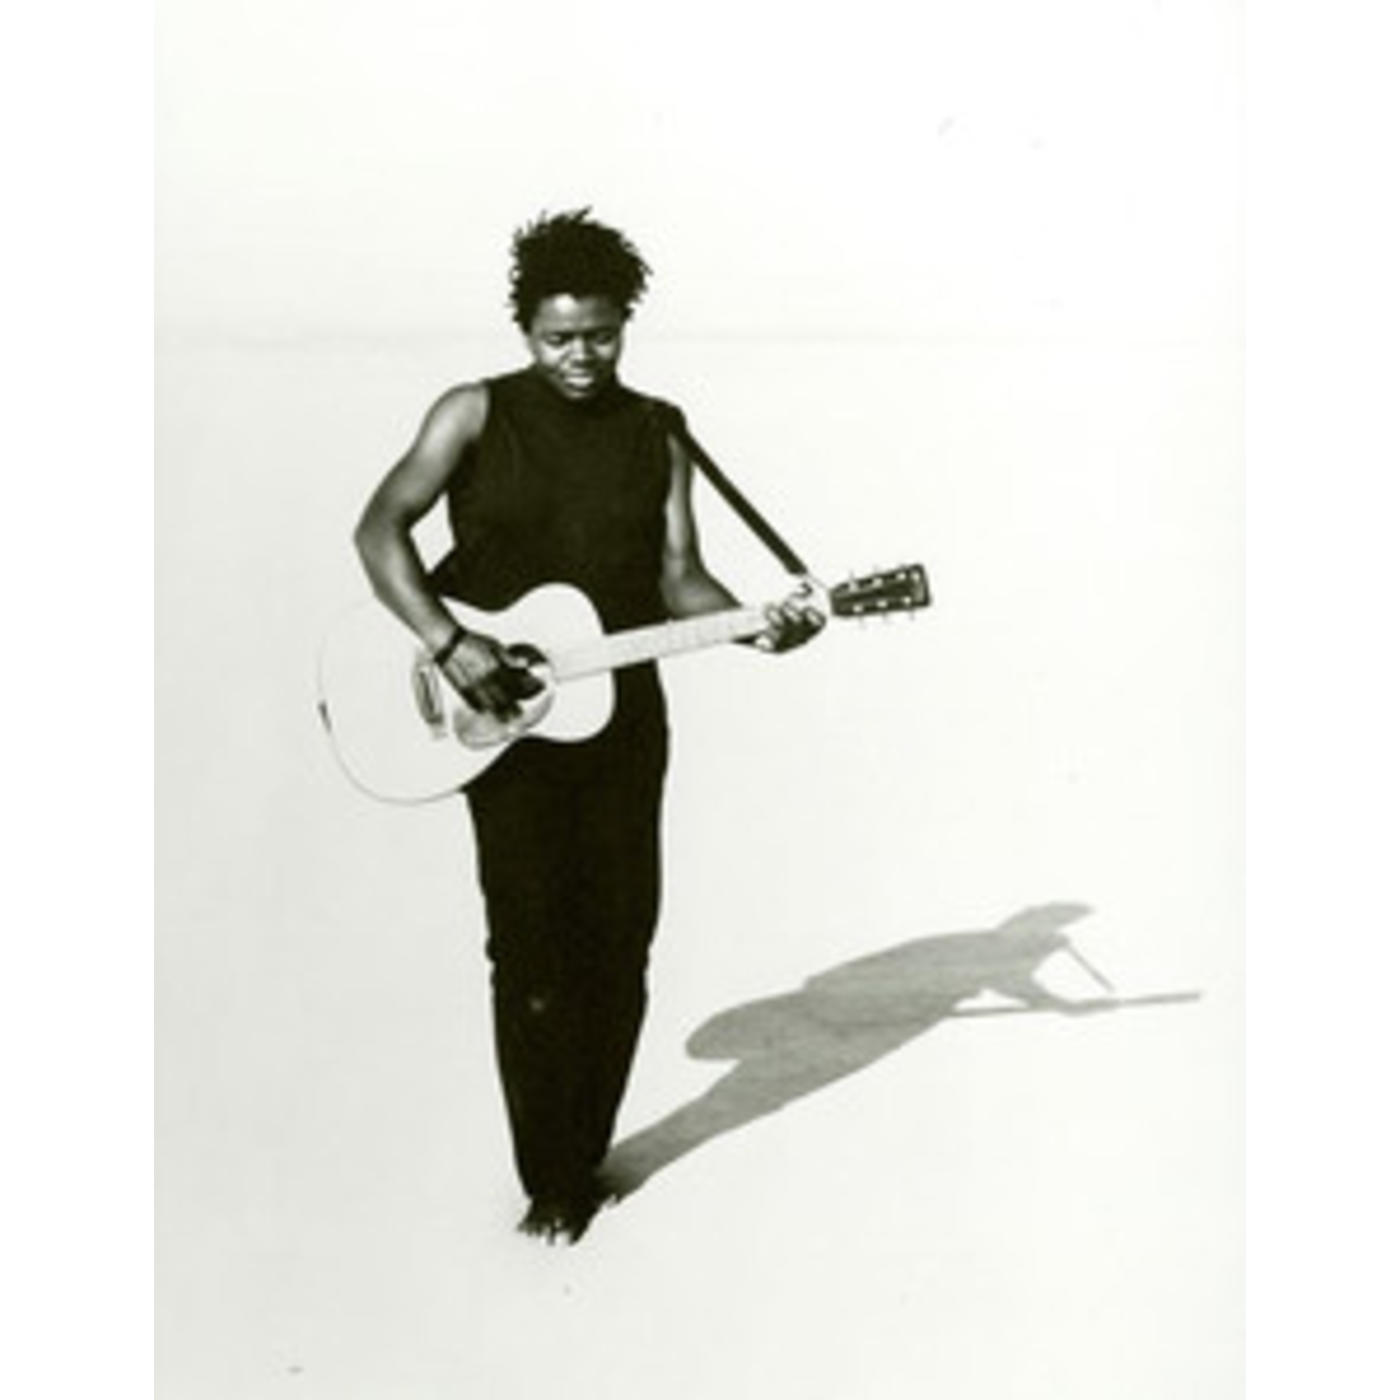 Official Tracy Chapman playlist - Fast Car, Give Me One Reason, Talkin Bout A Revolution